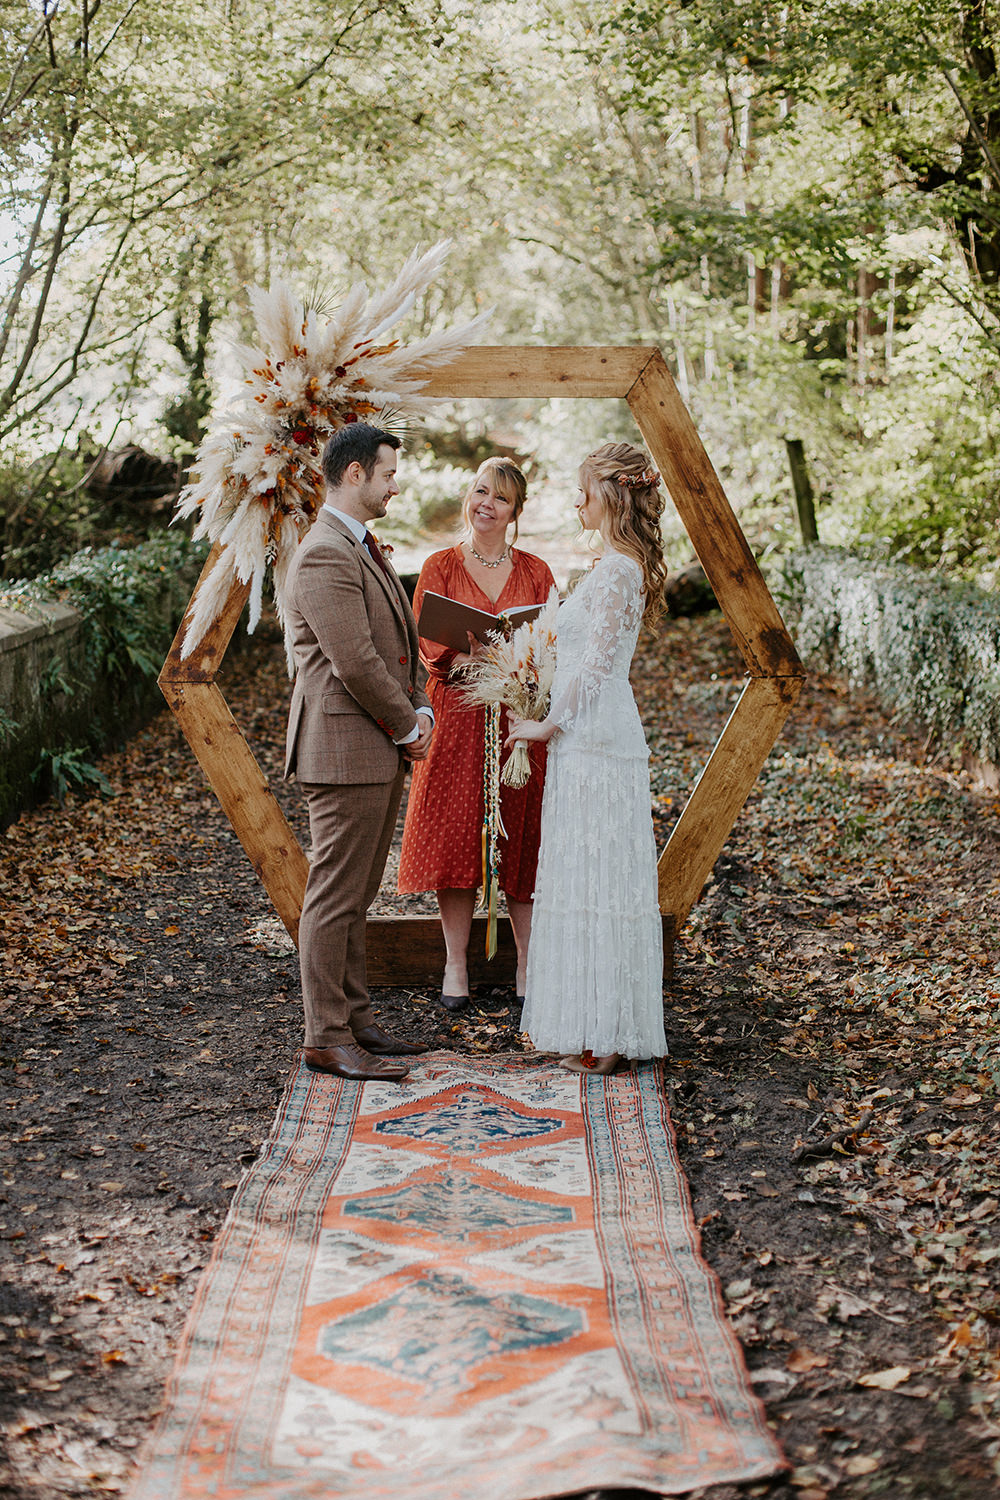 Hexagon Wooden Frame Backdrop Ceremony Arch Pampas Grass Autumn Woodland Boho Wedding Ideas The Enlight Project